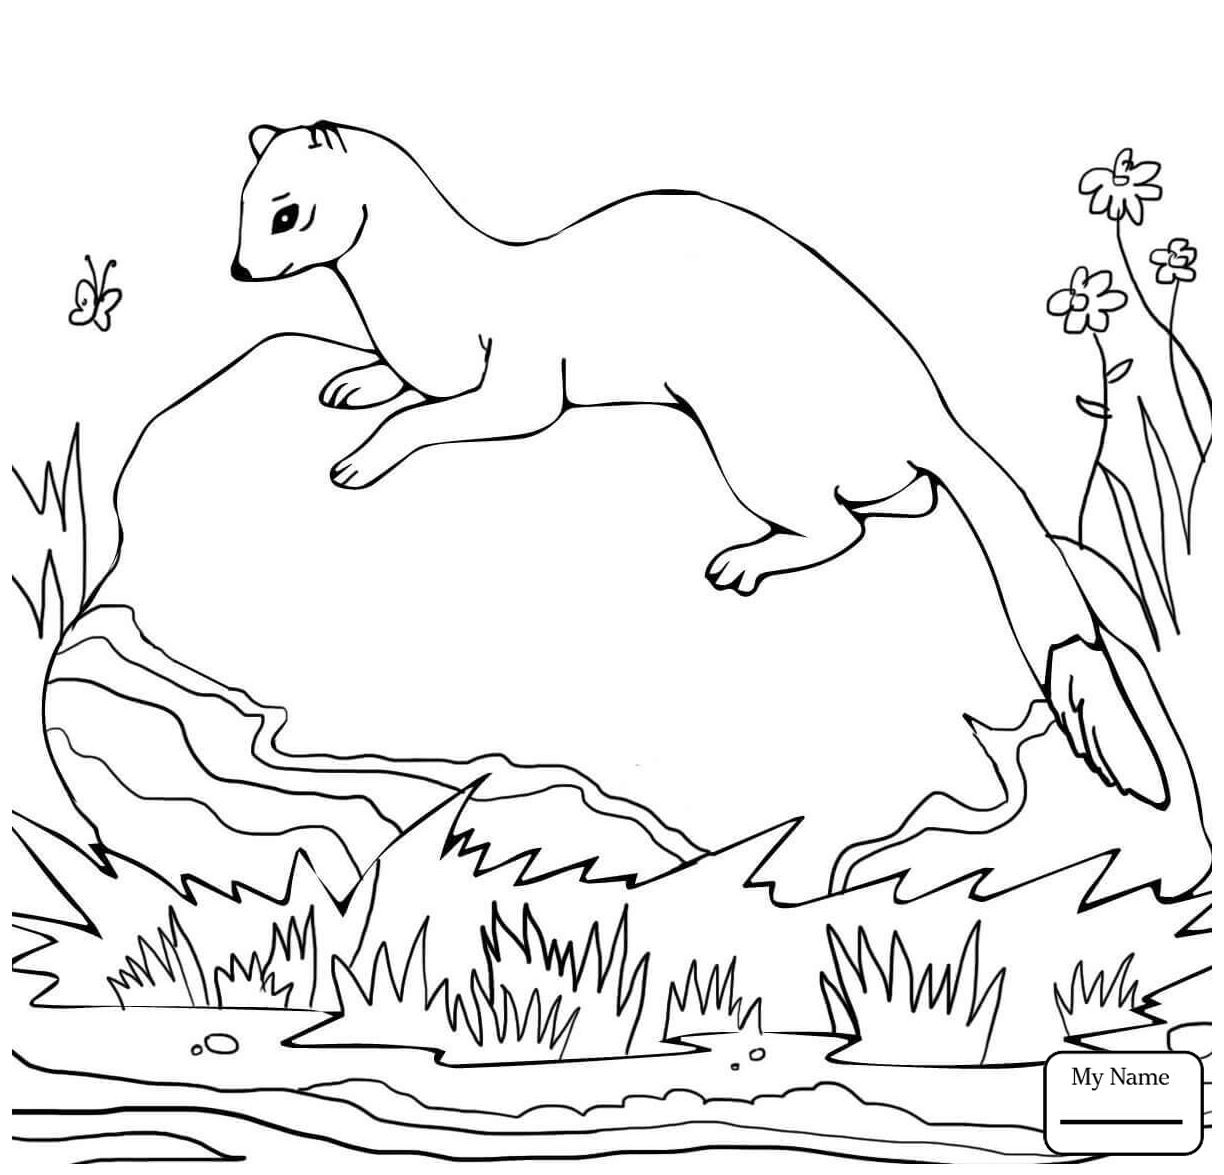 1224x1175 Unique Weasel Coloring Page Gallery Printable Coloring Sheet